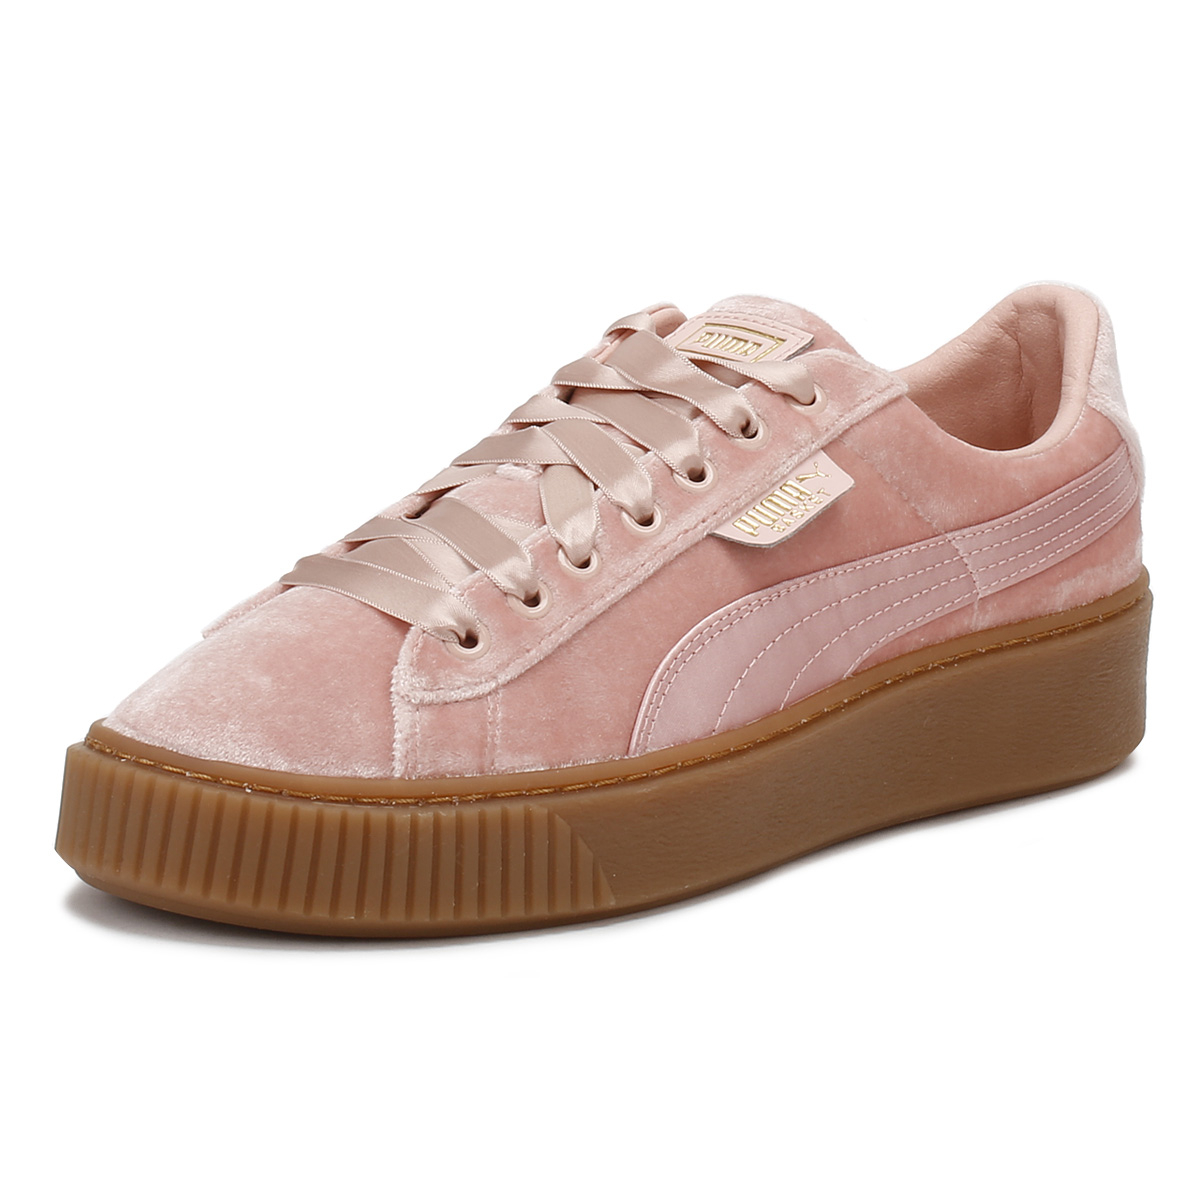 5f4c2b59bfb5 Details about PUMA Womens Pink Trainers Gum Velvet Basket Platform Lace Up  Ladies Shoes